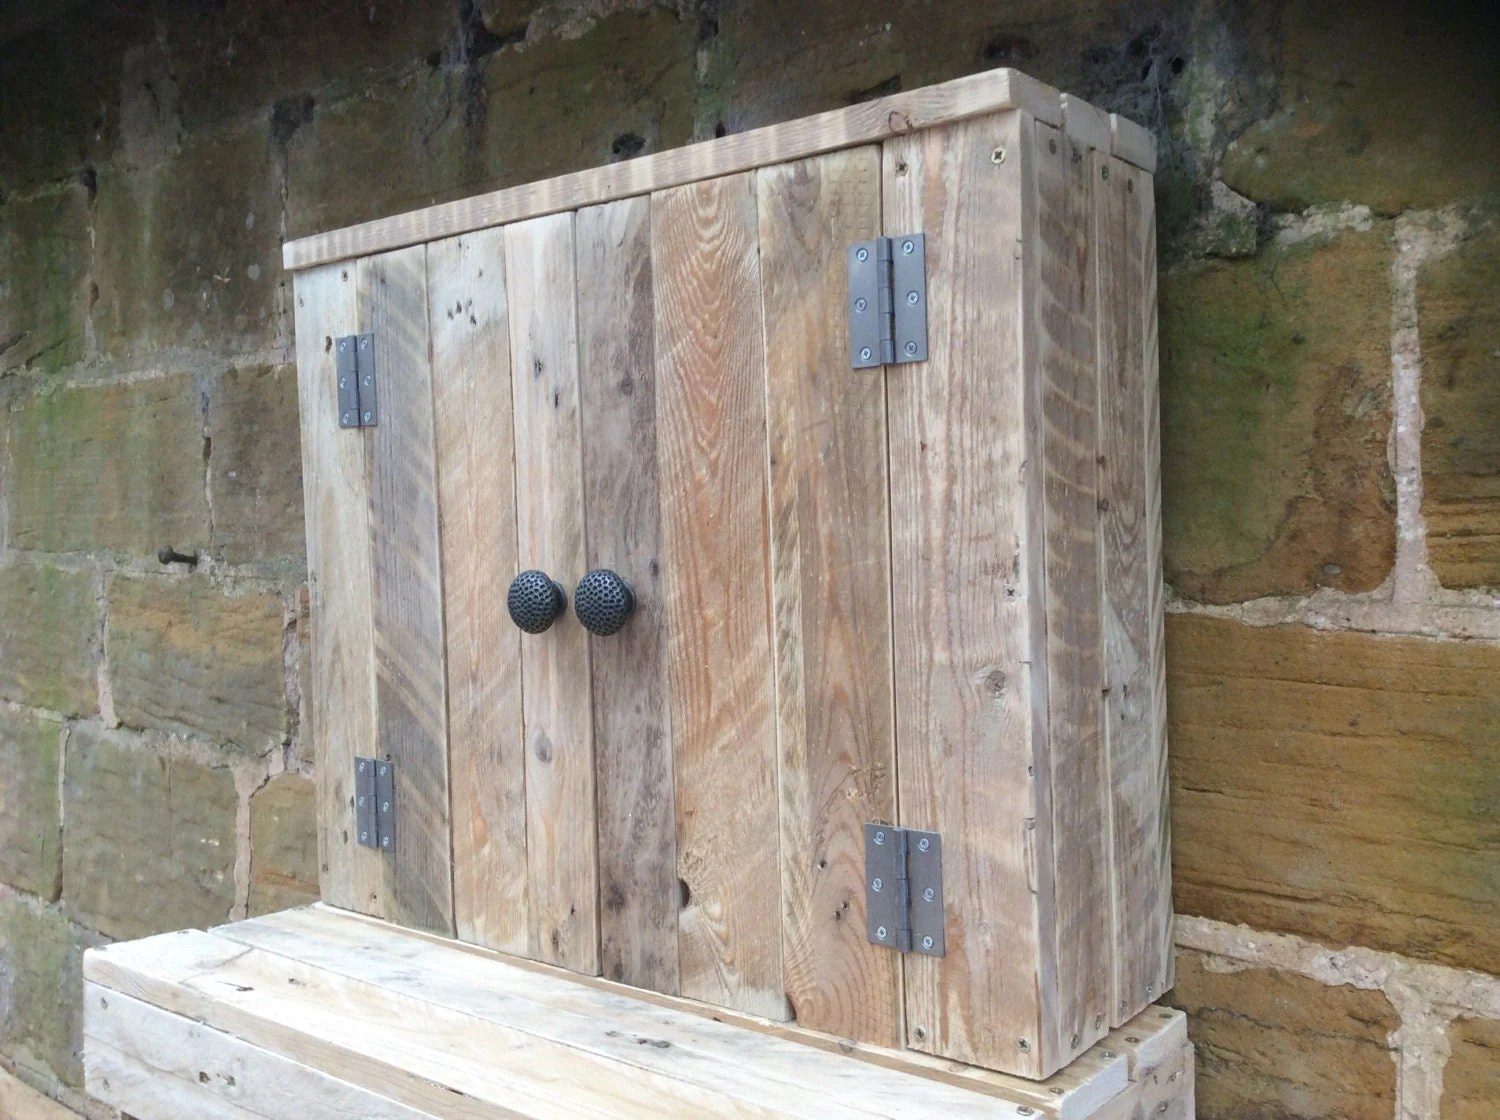 Rustic Bathroom Wall Cabinets Rustic Wall Mounted Bathroom Cabinet Made From Reclaimed